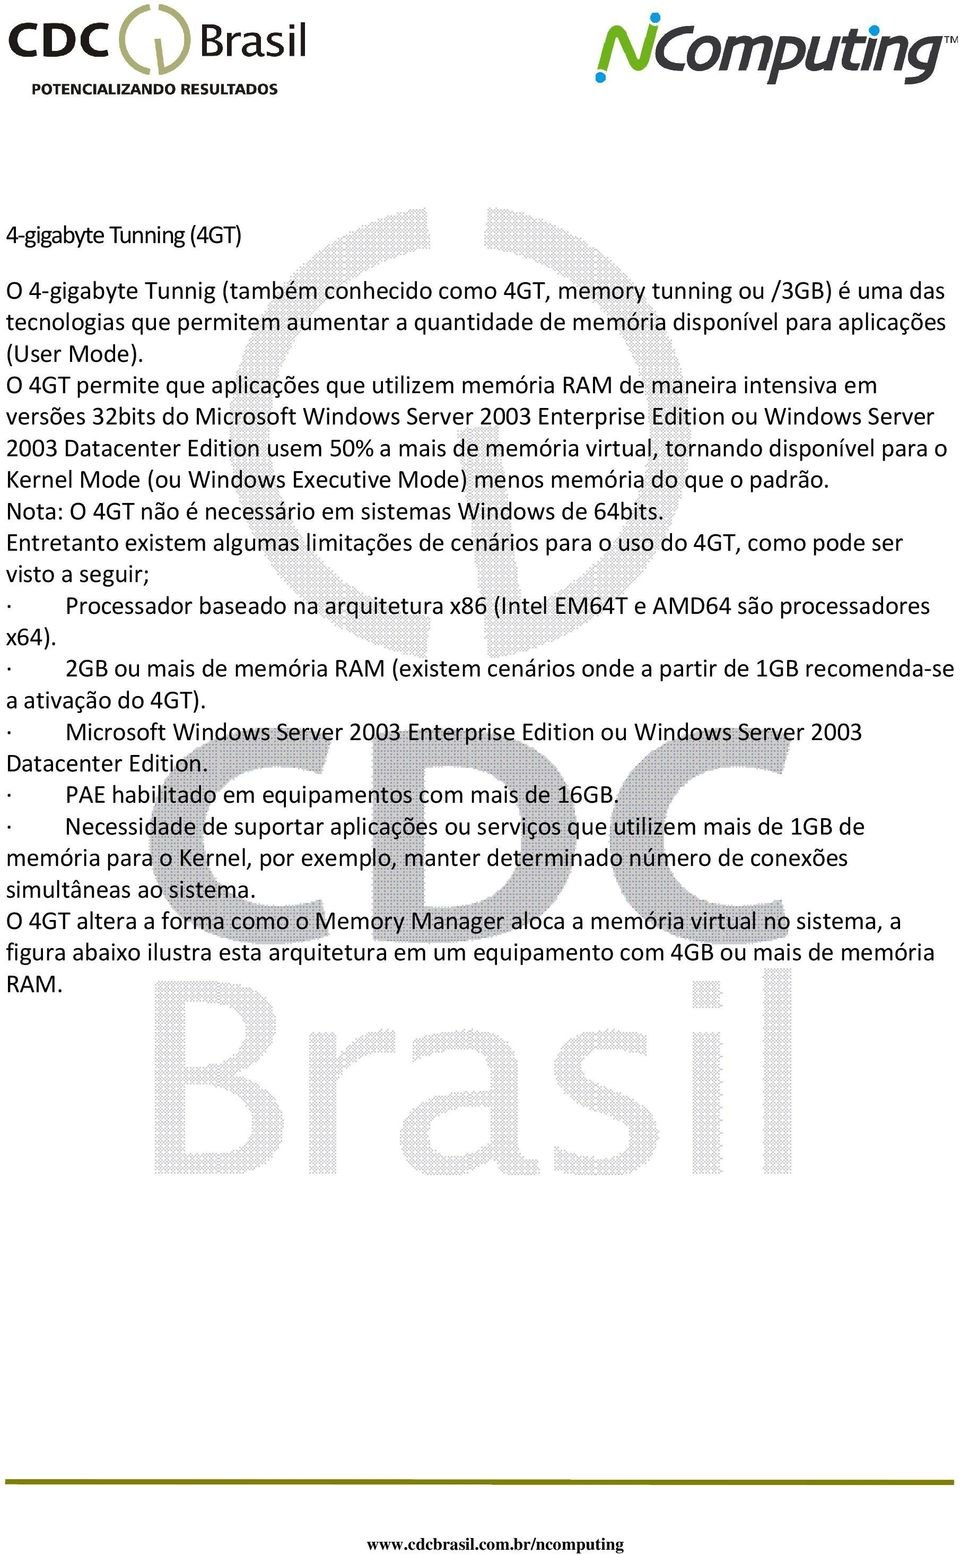 O 4GT permite que aplicações que utilizem memória RAM de maneira intensiva em versões 32bits do Microsoft Windows Server 2003 Enterprise Edition ou Windows Server 2003 Datacenter Edition usem 50% a